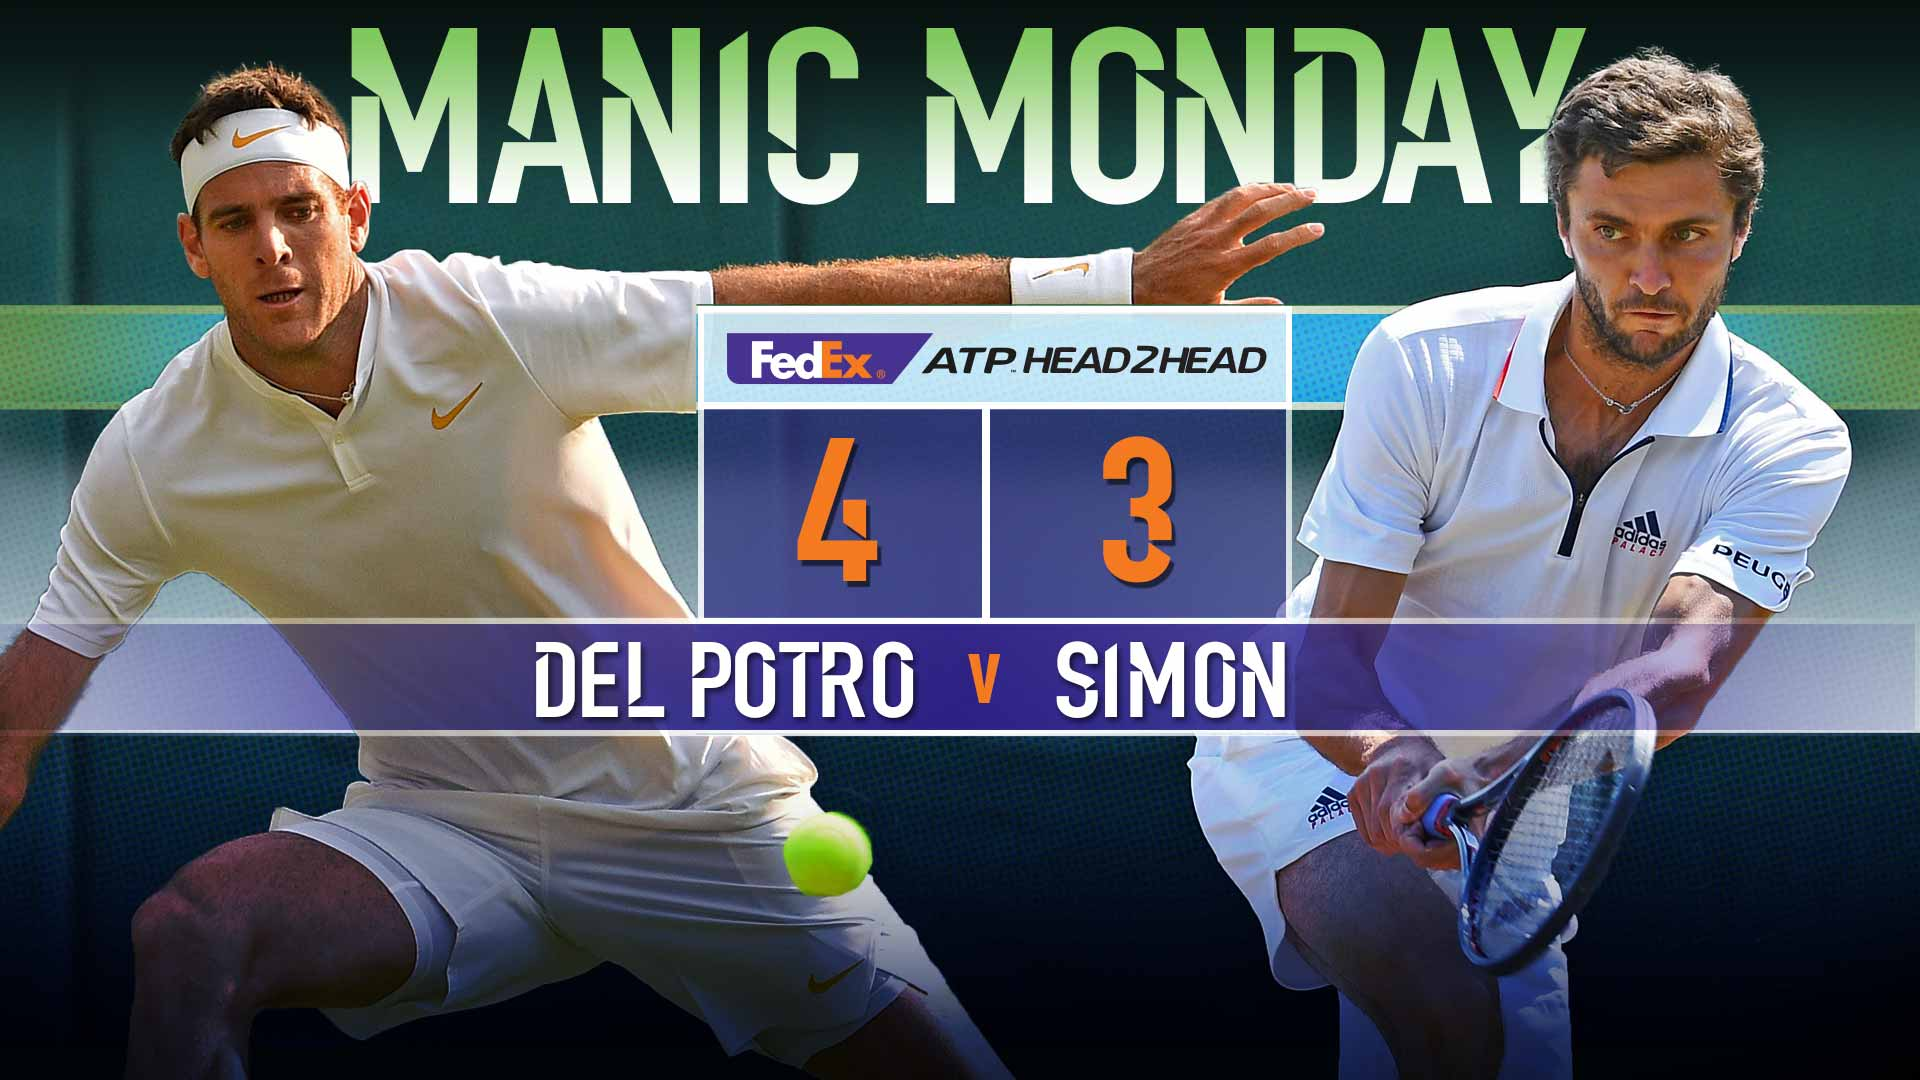 It's almost here. ����������  Previewing 'Manic Monday' ➡️ https://t.co/LvtS6oAG2L  #ATP #Wimbledon https://t.co/ovyHzc0bkW